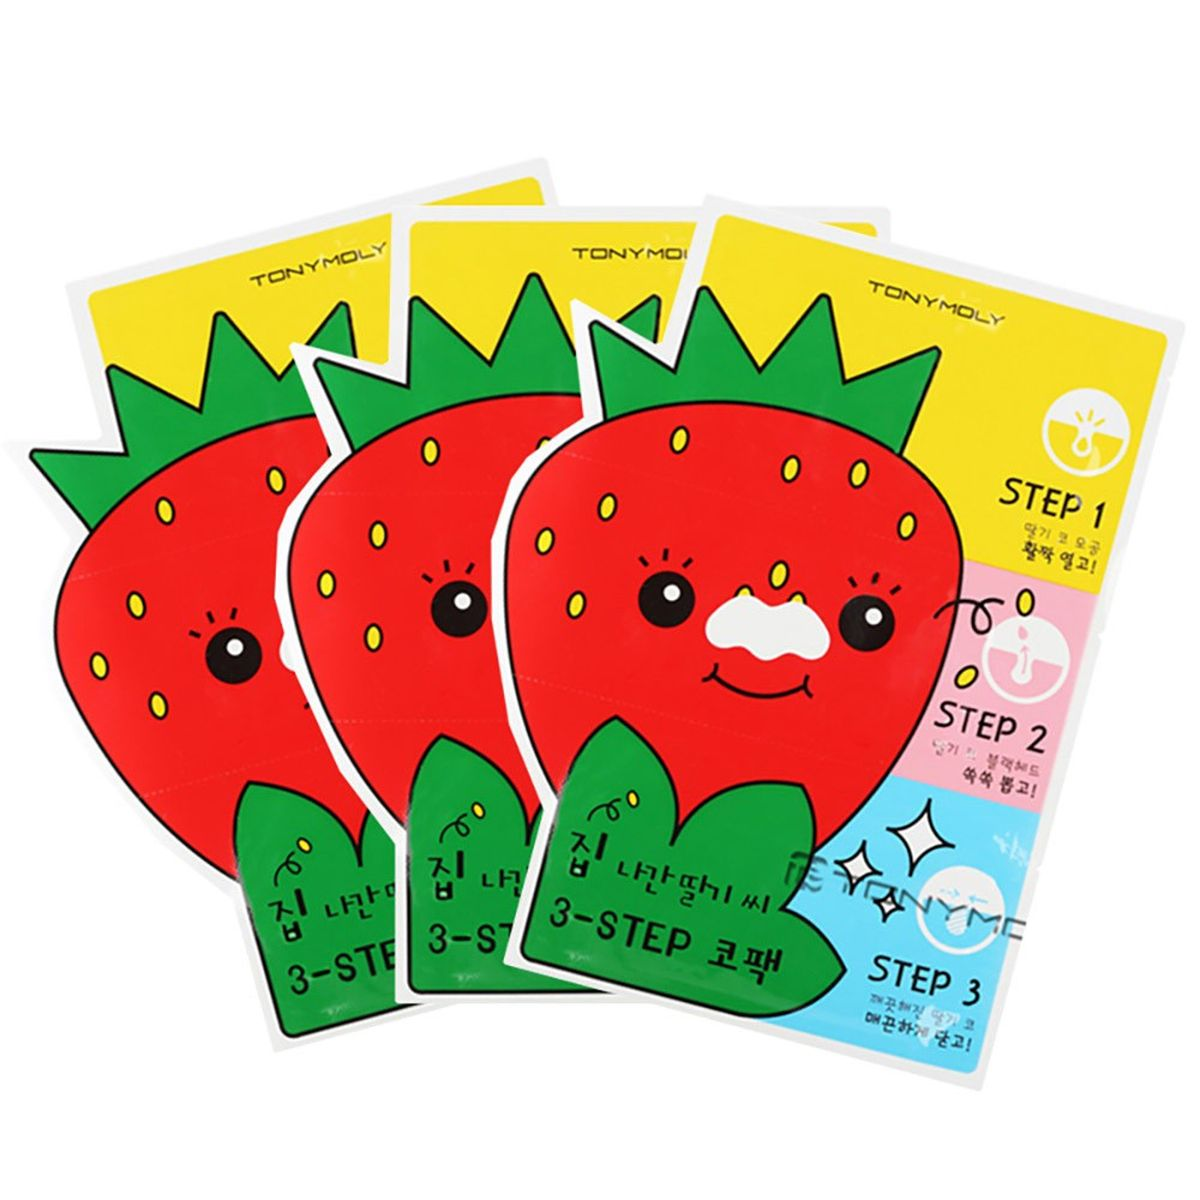 Пластыри от черных точек Tony Moly Homeless Strawberry Seeds 3-step Nose Pack